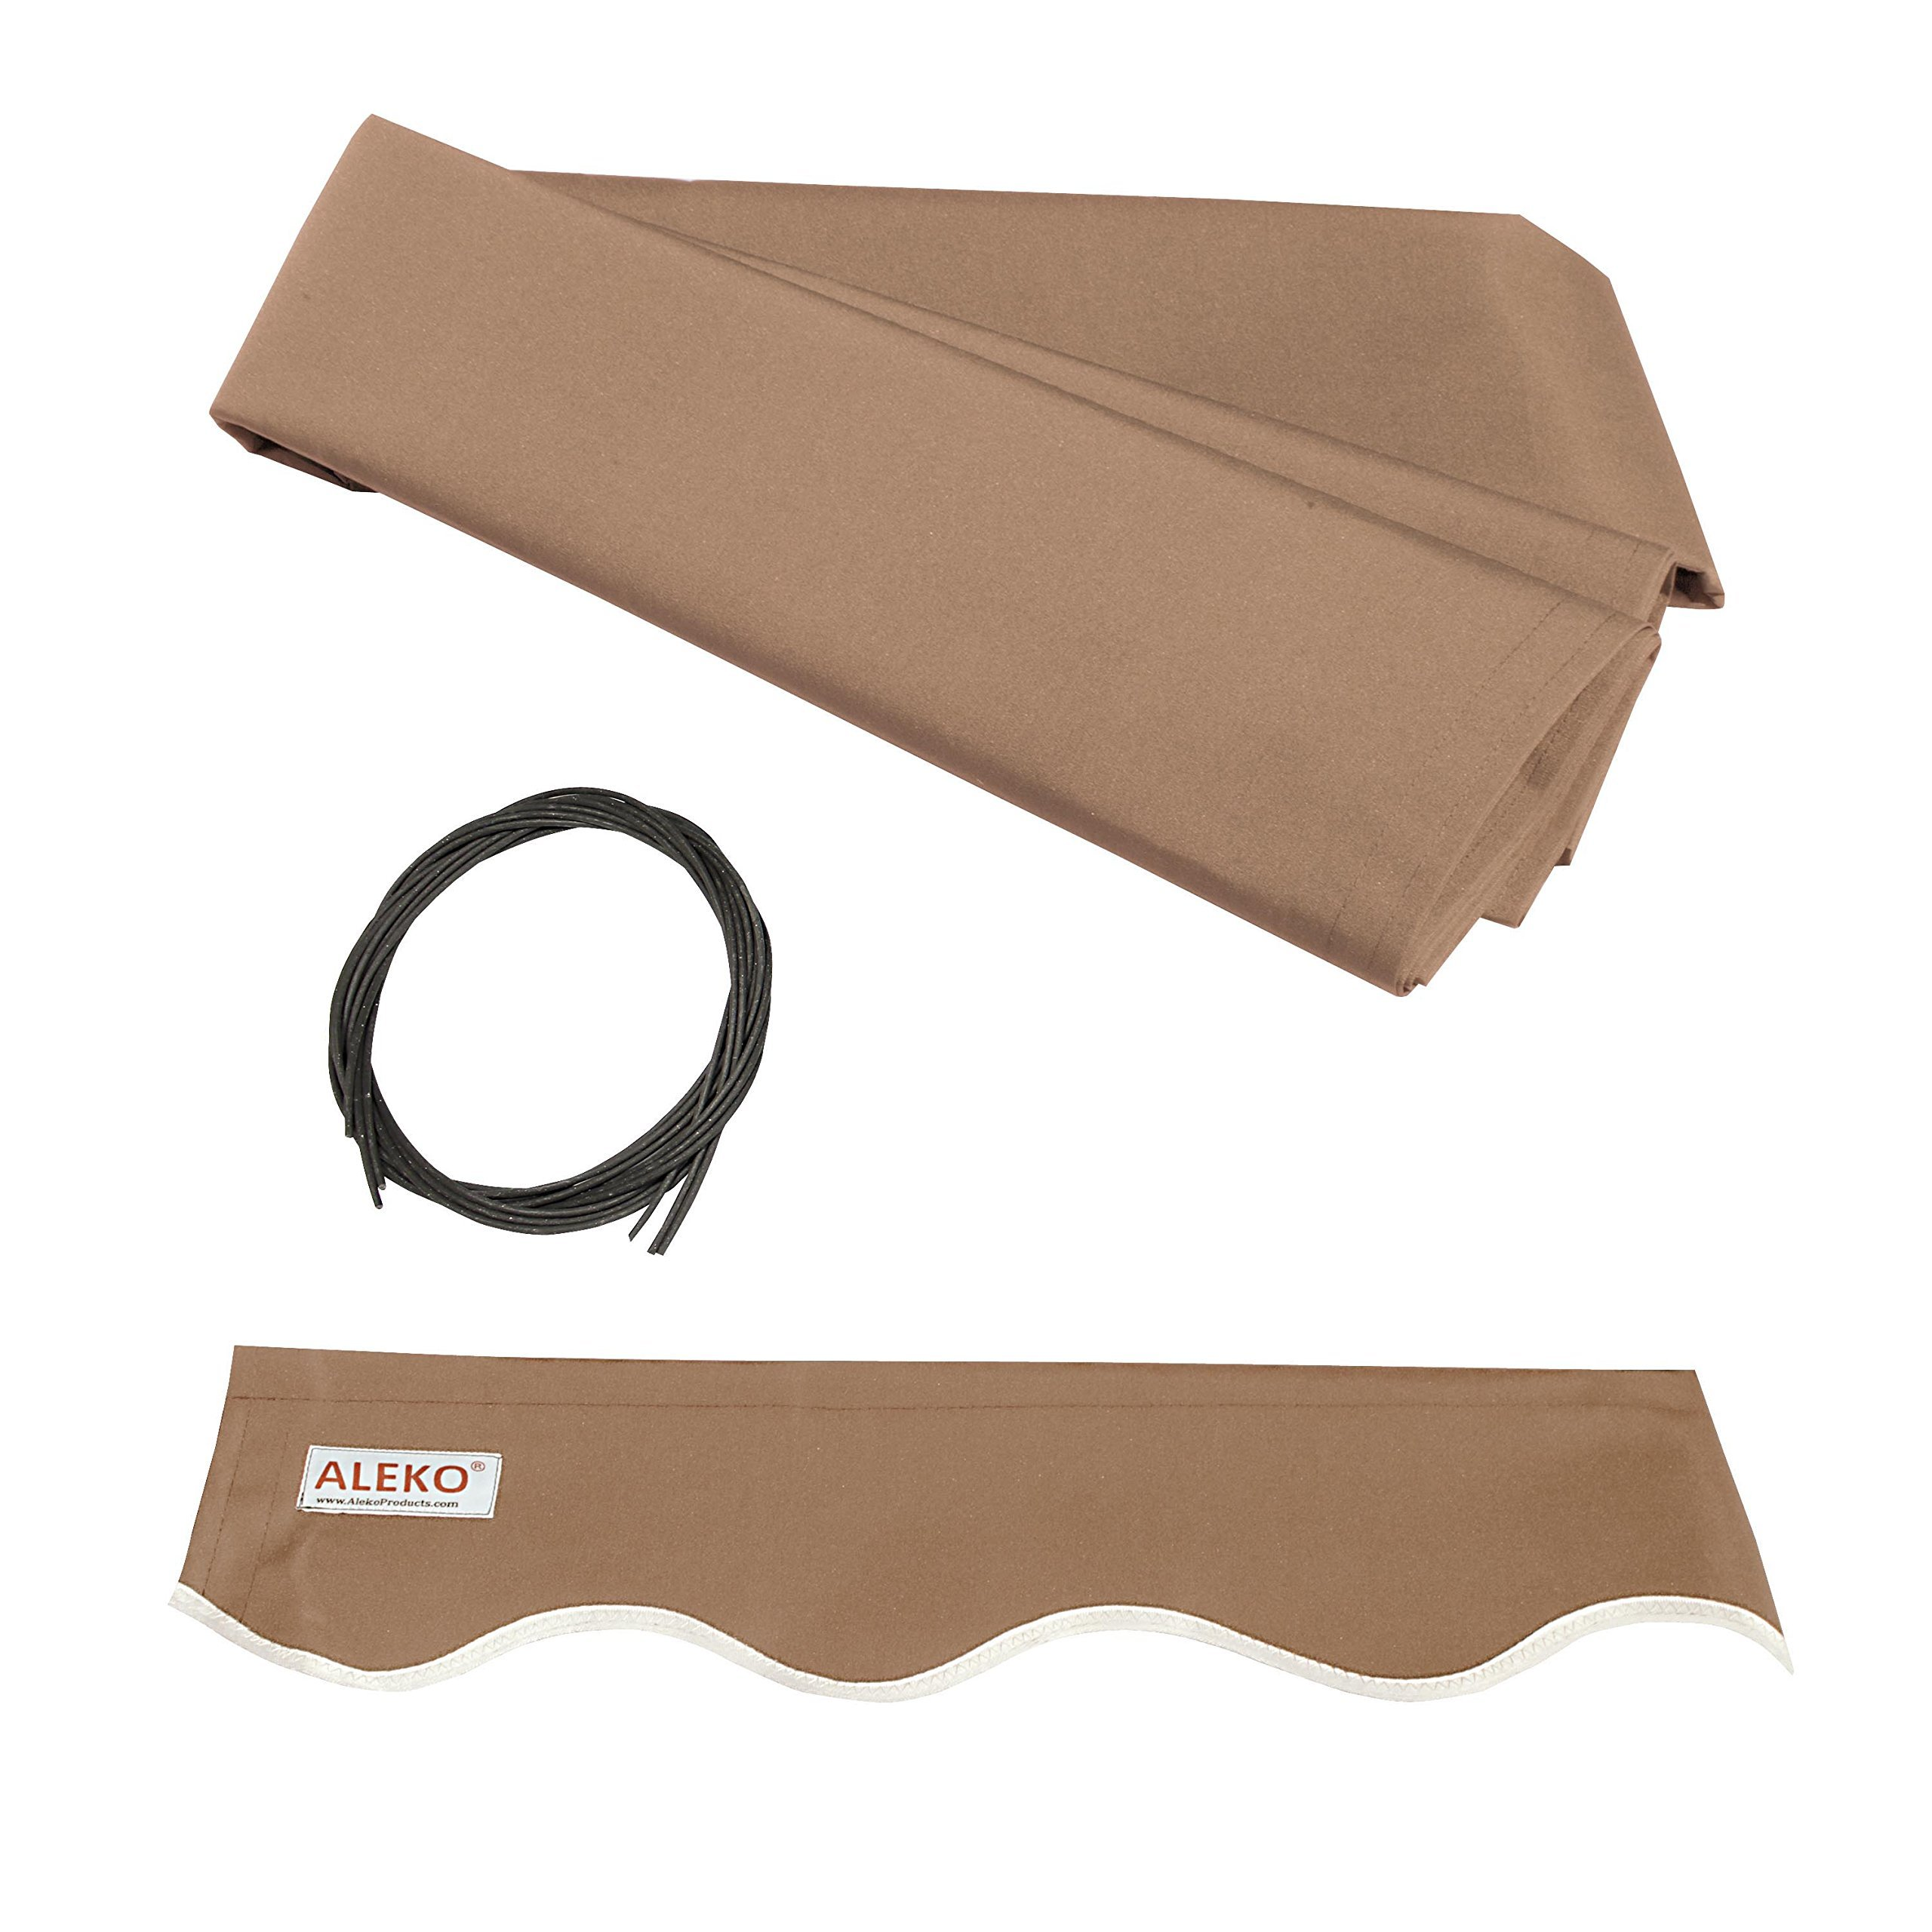 ALEKO FAB13X10SAND31 Retractable Awning Fabric Replacement 13 x 10 Feet Sand